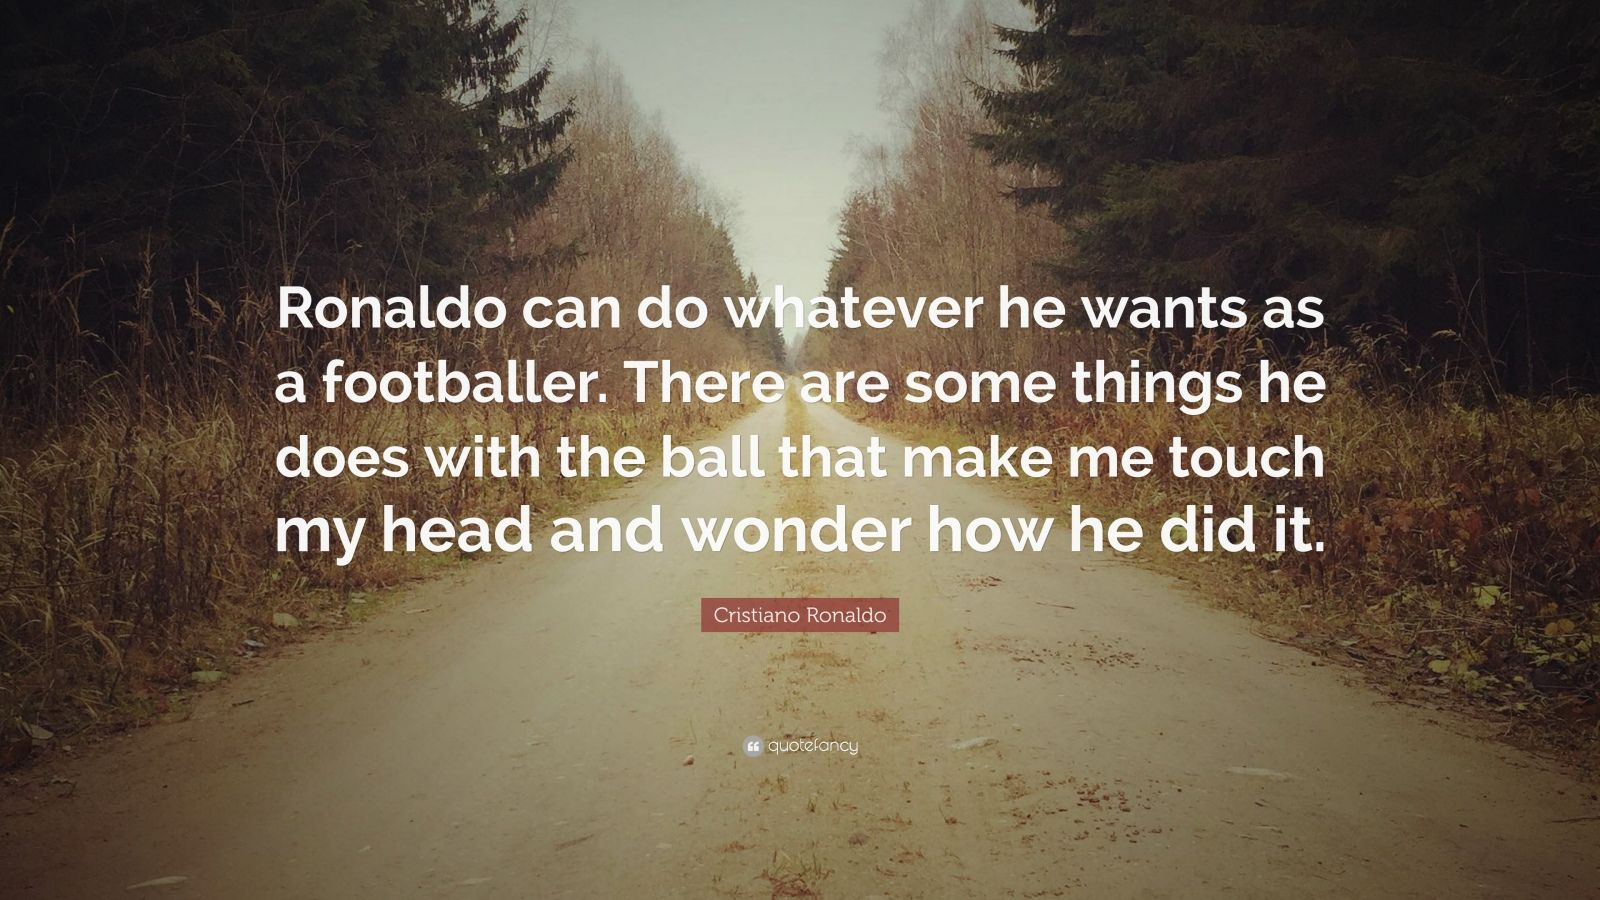 """Cristiano Ronaldo Quote: """"Ronaldo can do whatever he wants as a footballer. There are some things he does with the ball that make me touch my head and wonder how he did it."""""""